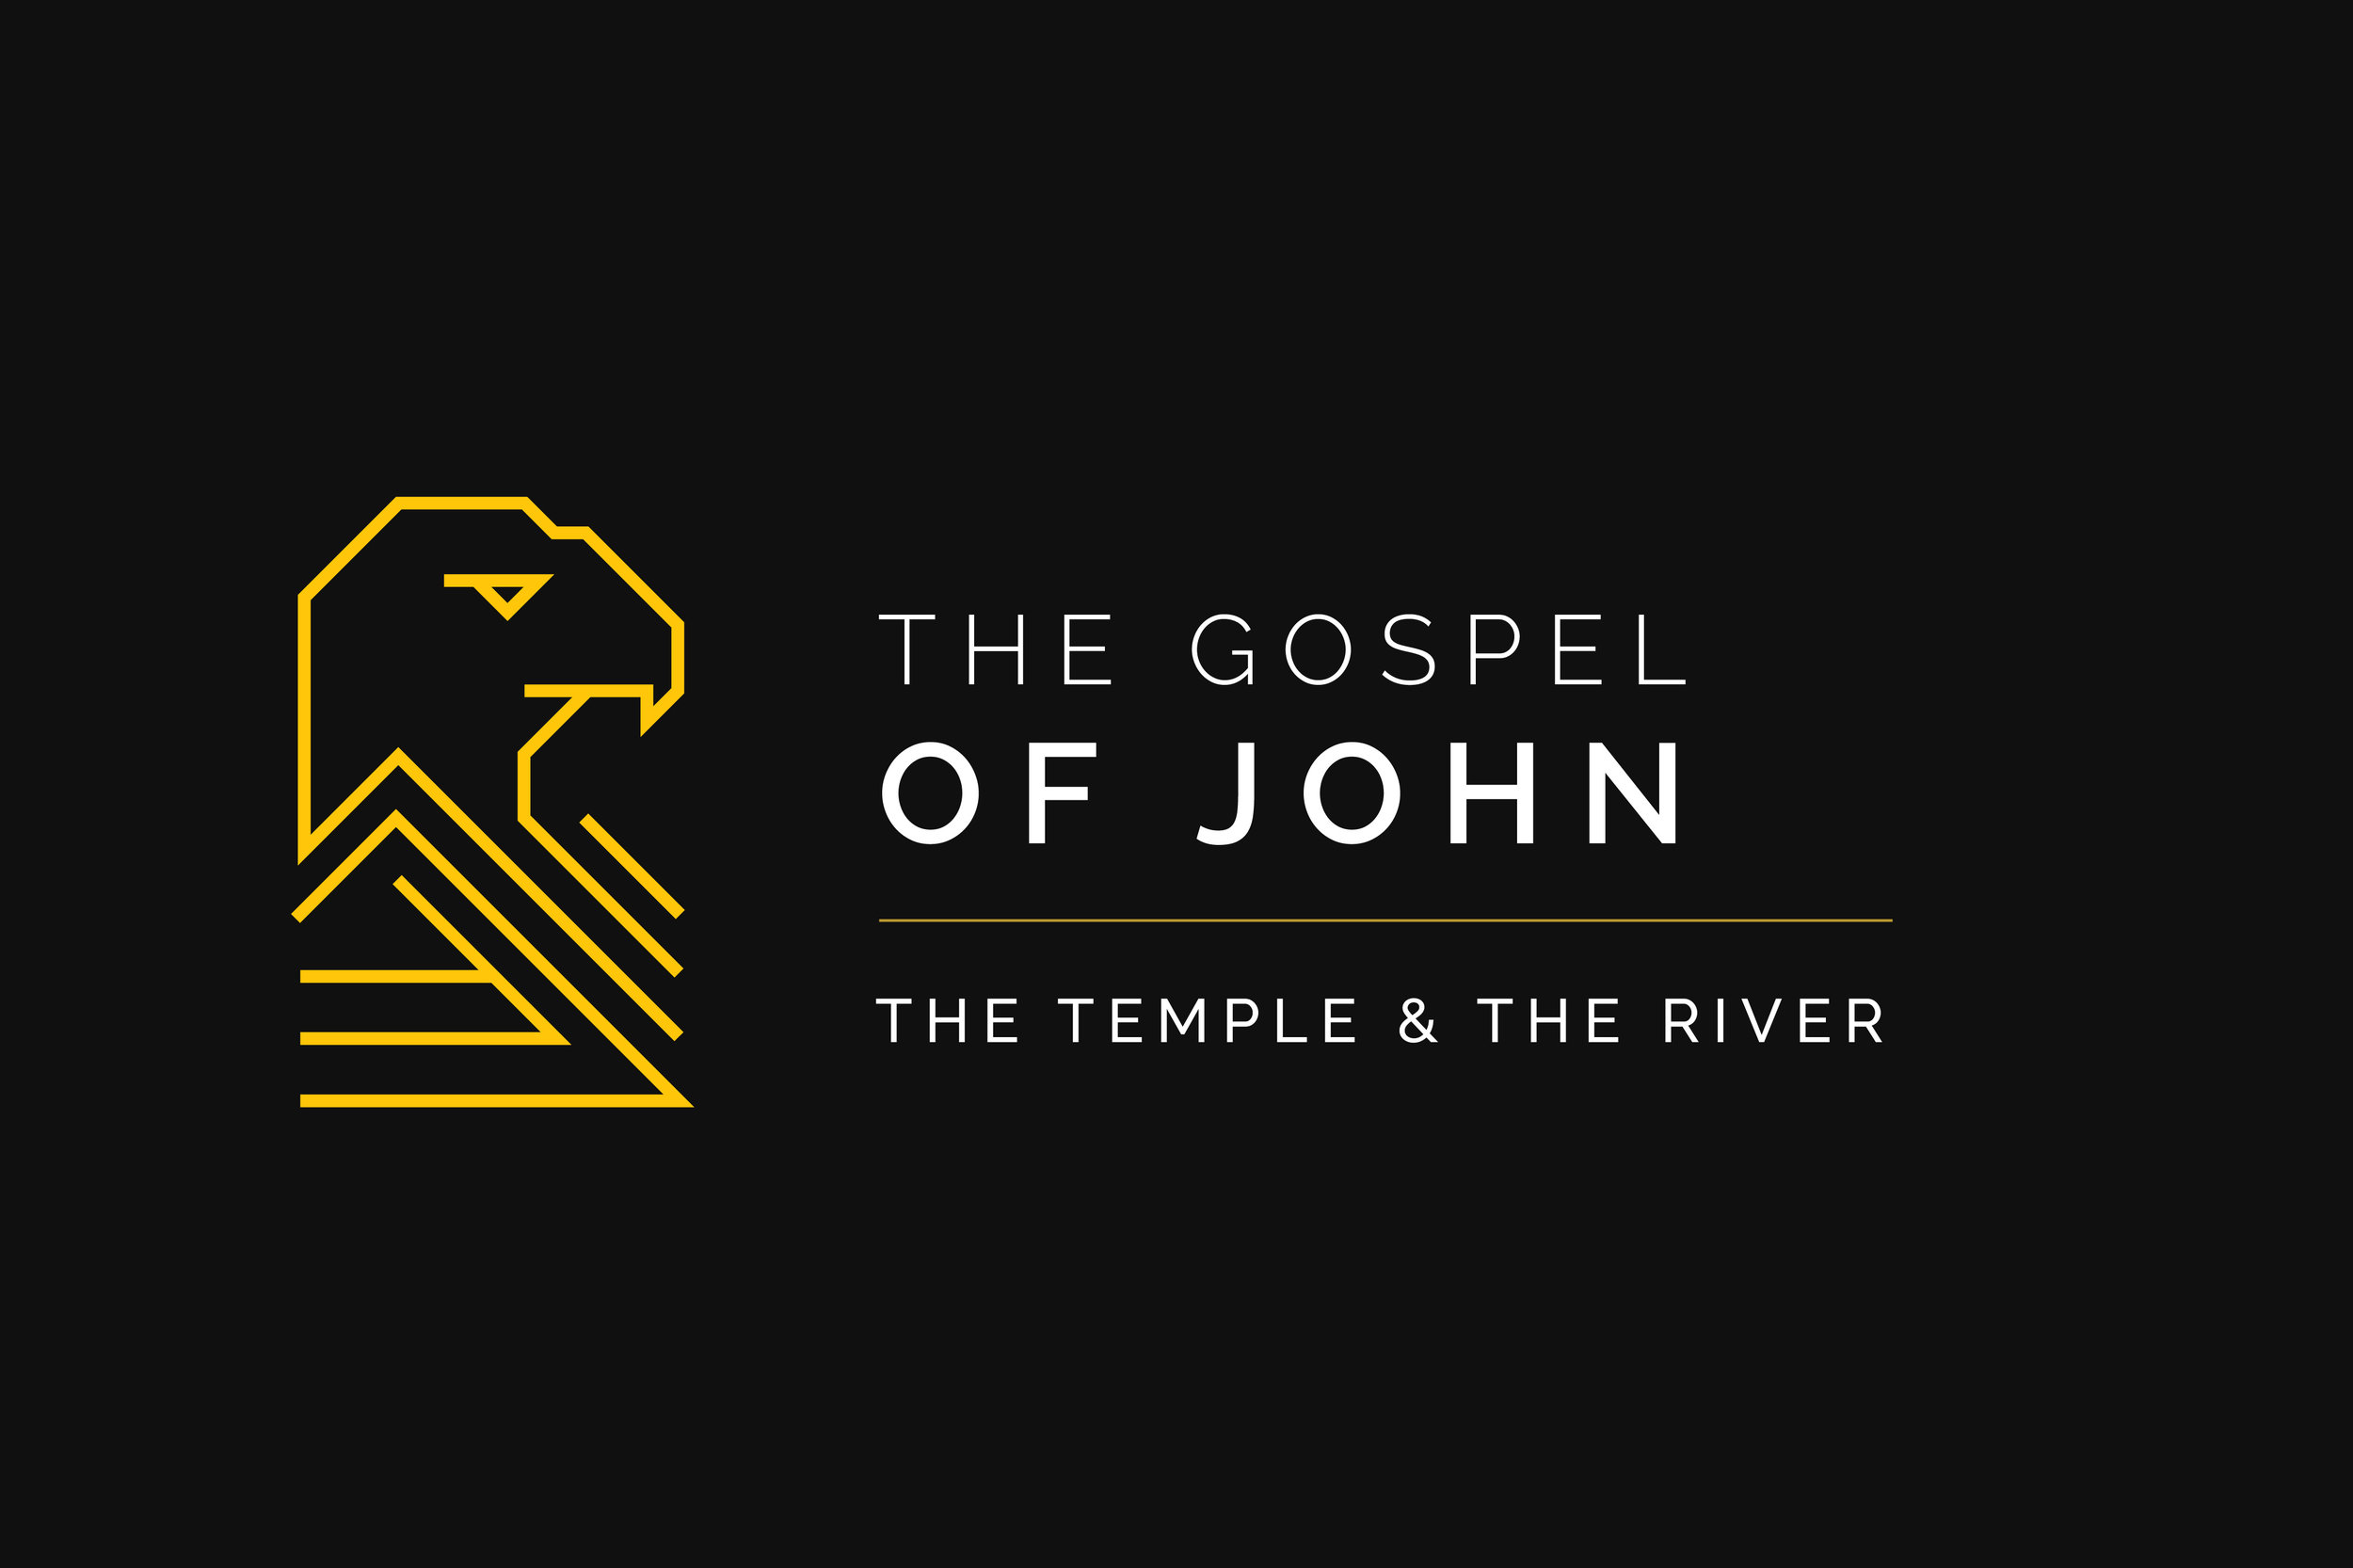 The-Gospel-of-John--The-Temple-and-the-River.jpg